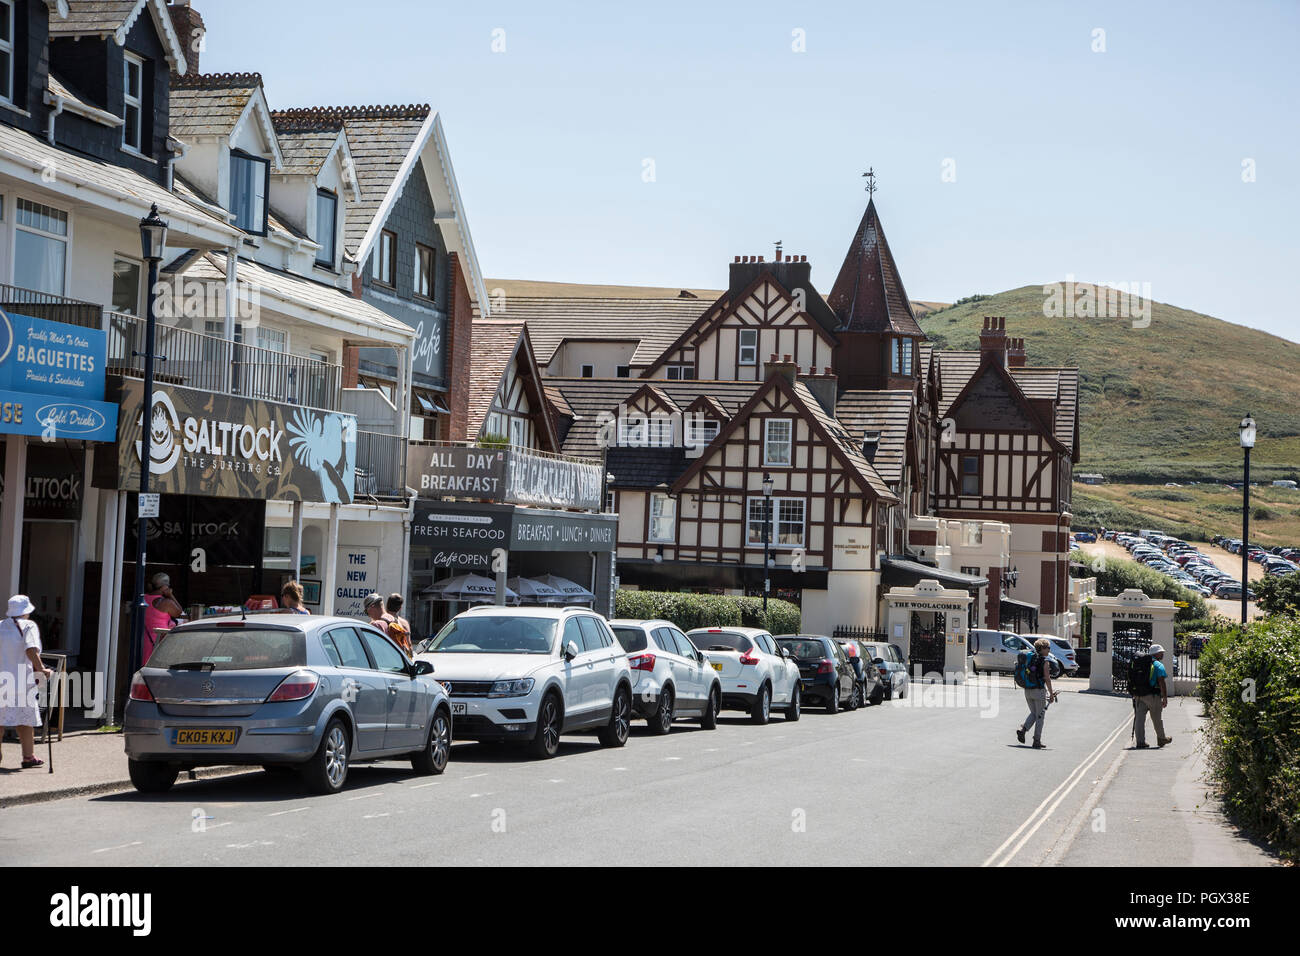 Woolacombe shop fronts and hotel near the beach front on a bright sunny day in the summertime in Woolacombe, North devon, England - Stock Image